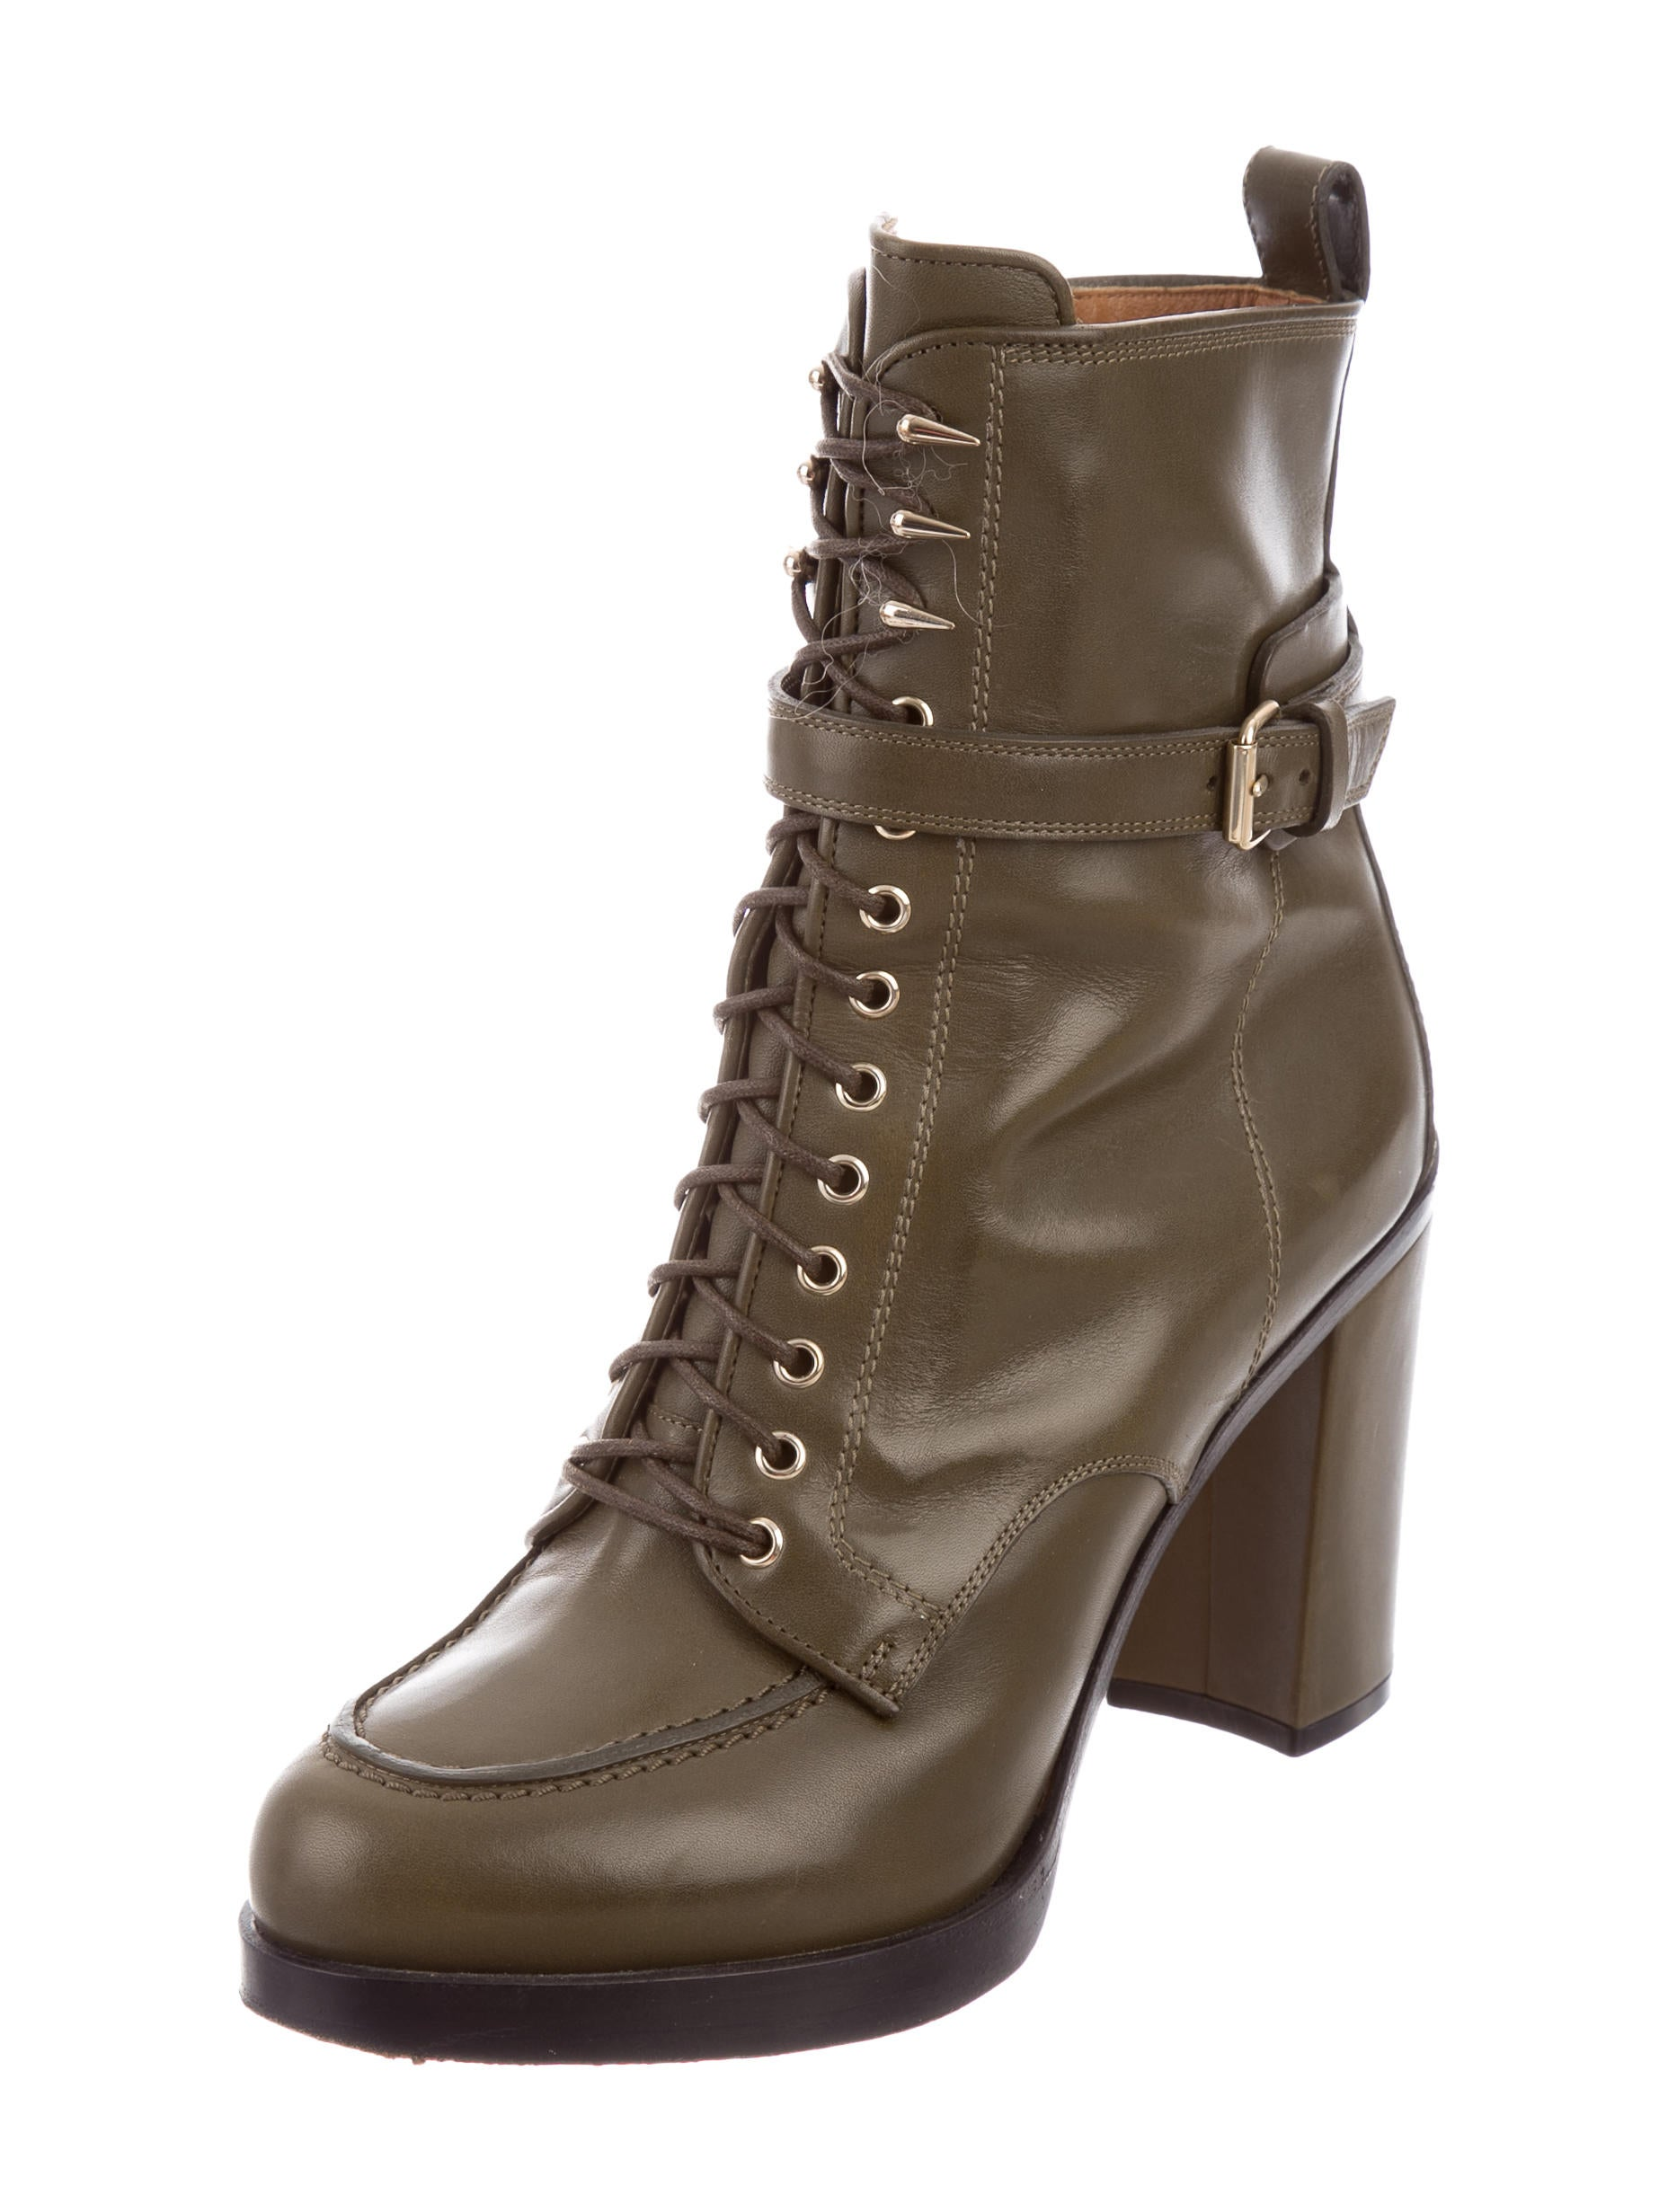 givenchy leather lace up boots shoes giv37022 the